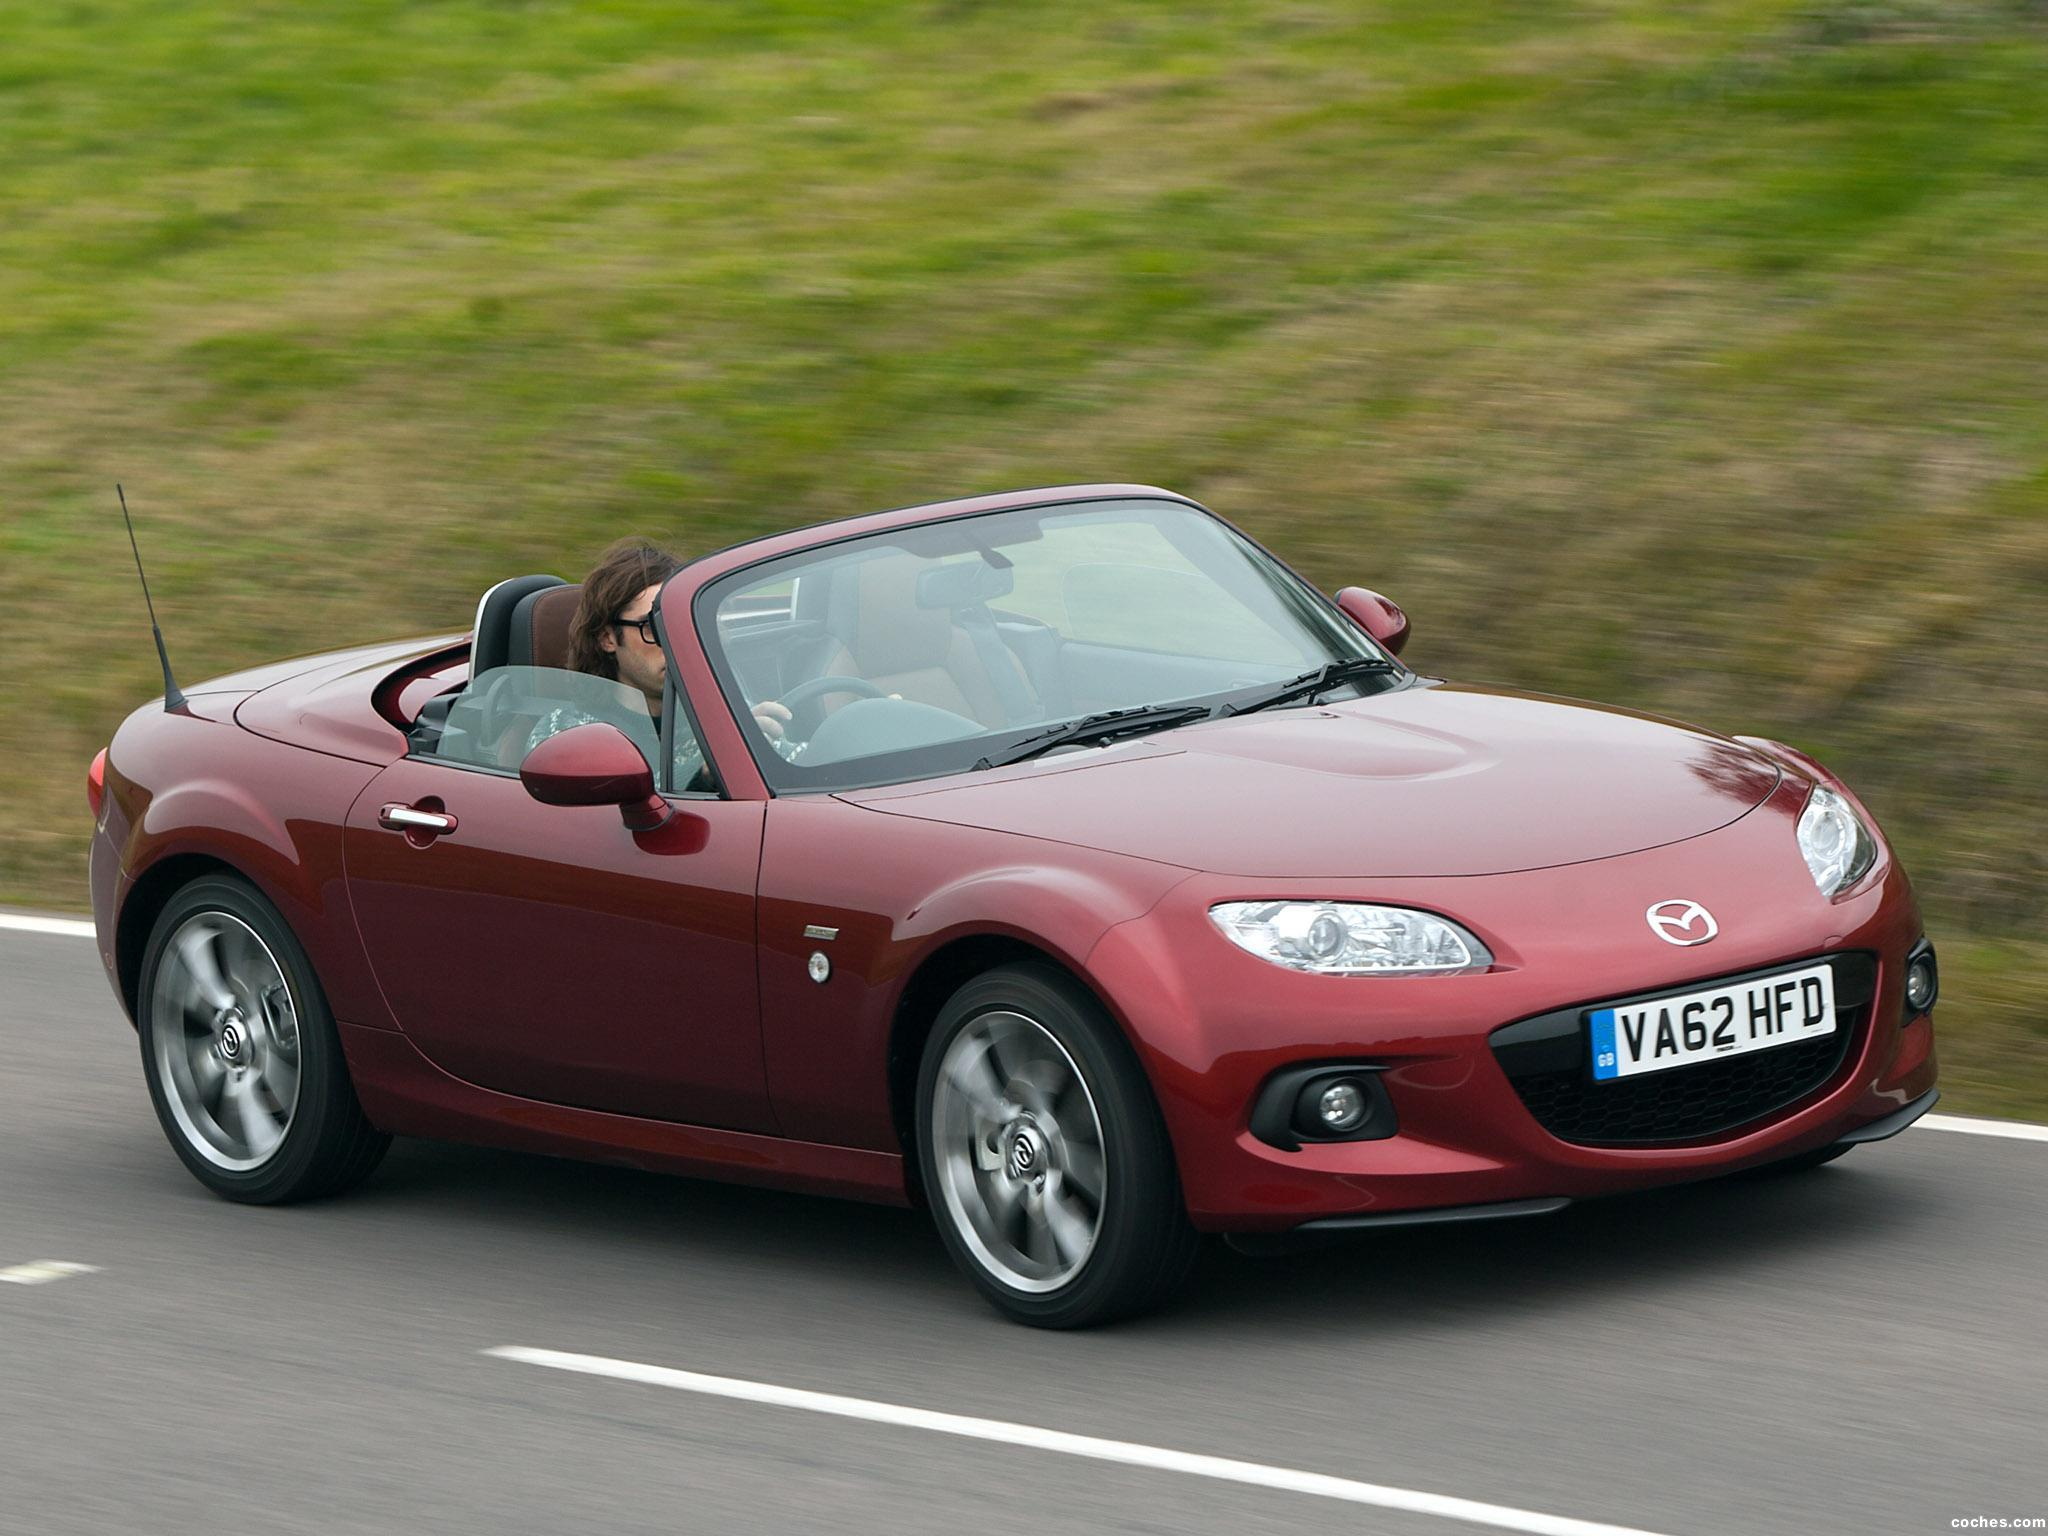 https://noticias.coches.com/wp-content/uploads/2014/07/mazda_mx-5-roadster-coupe-venture-edition-uk-2013_r3.jpg